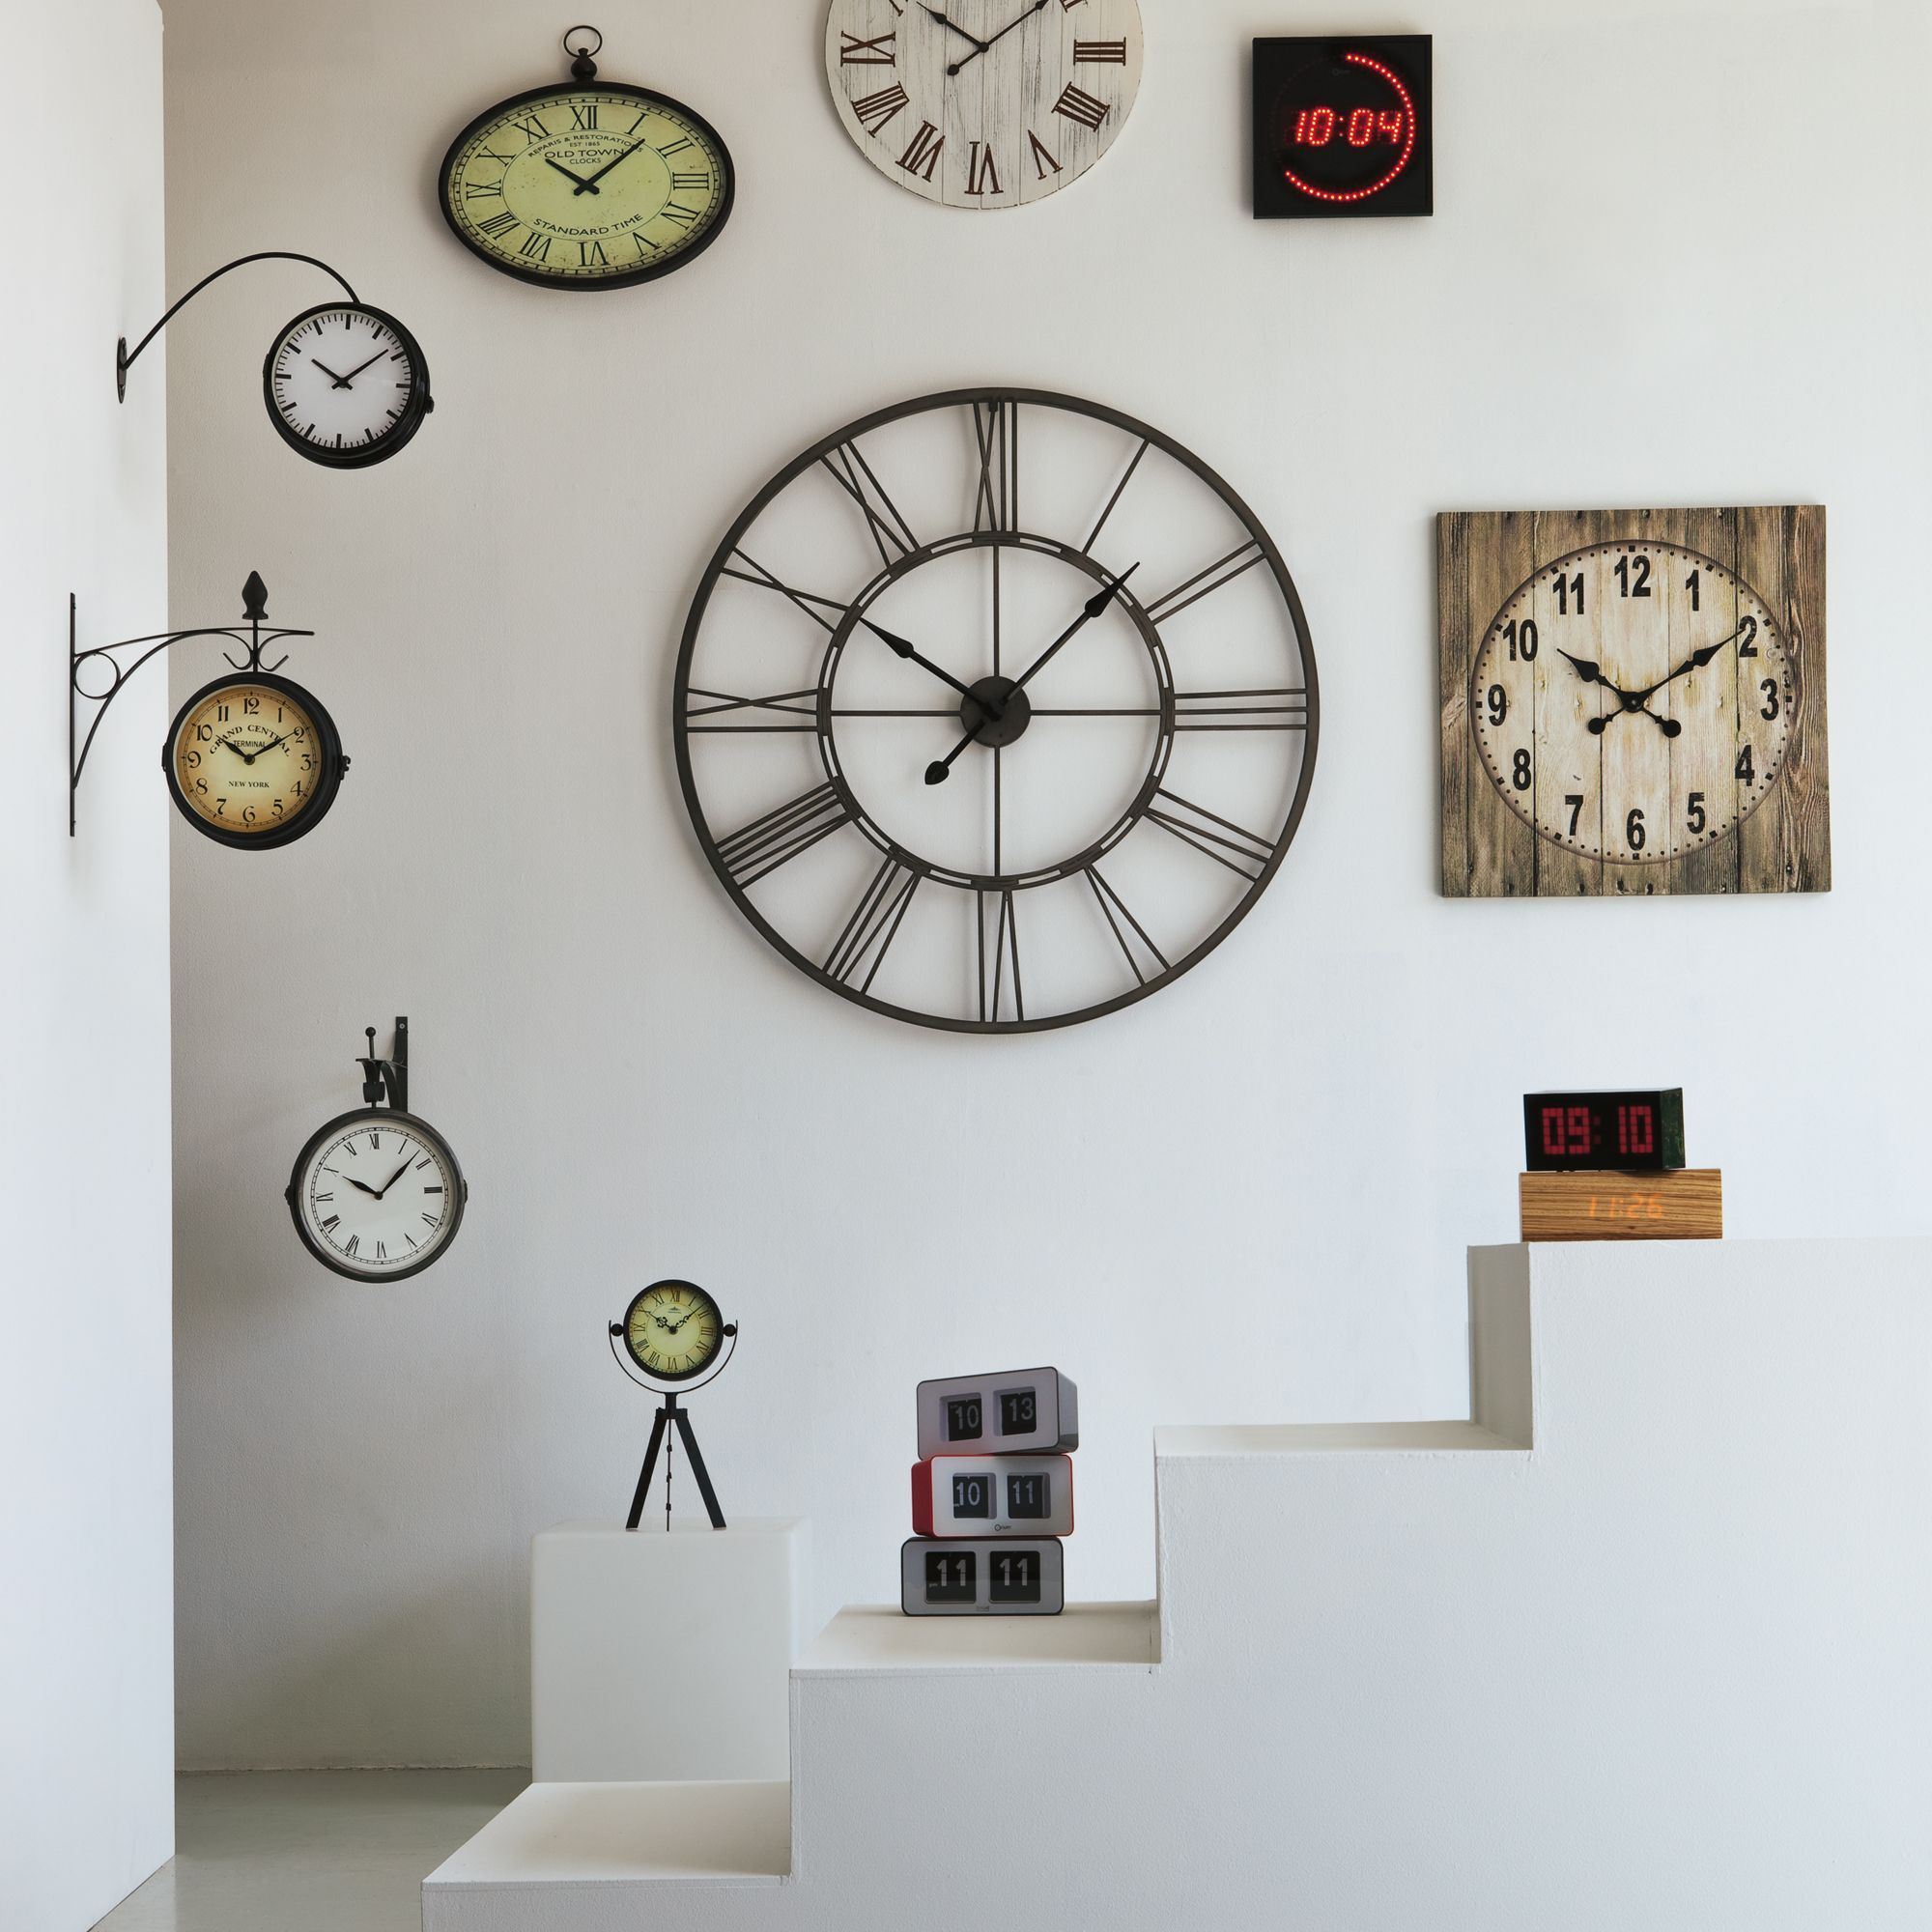 myron horloge murale en m tal d60cm future deco pinterest horloges murales alin a et la deco. Black Bedroom Furniture Sets. Home Design Ideas